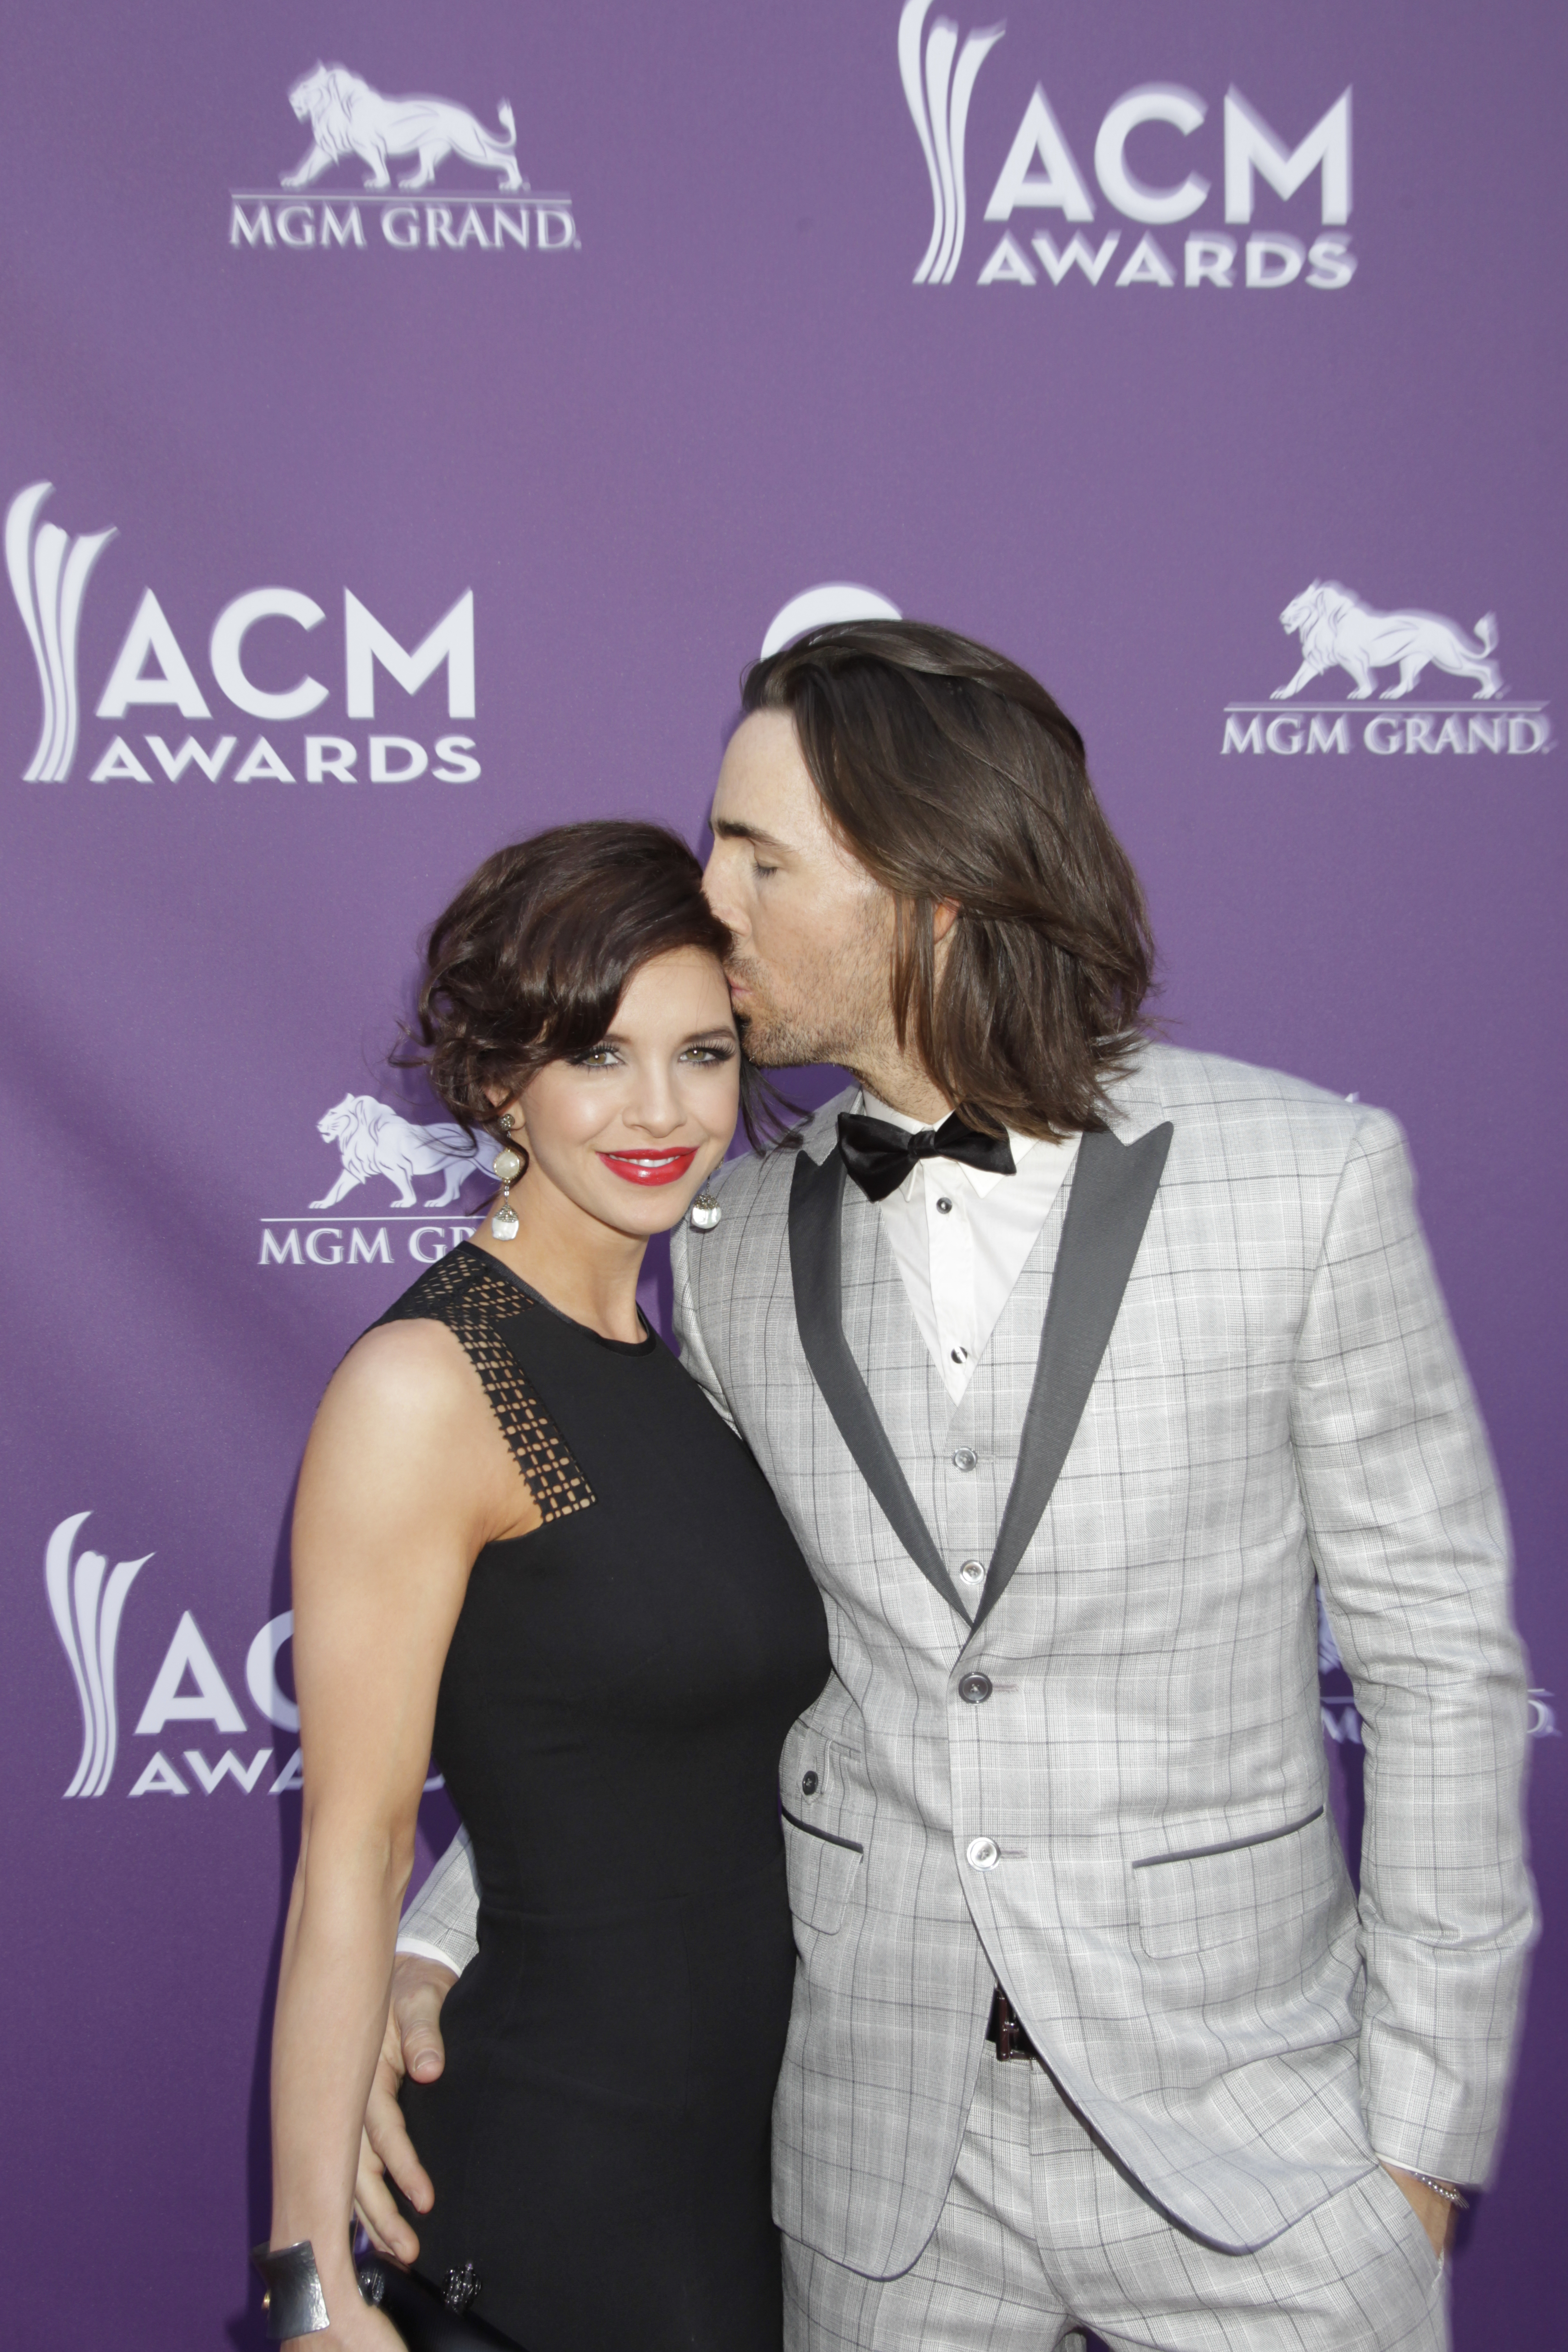 Jake Owen on the Red Carpet - 48th ACM Awards